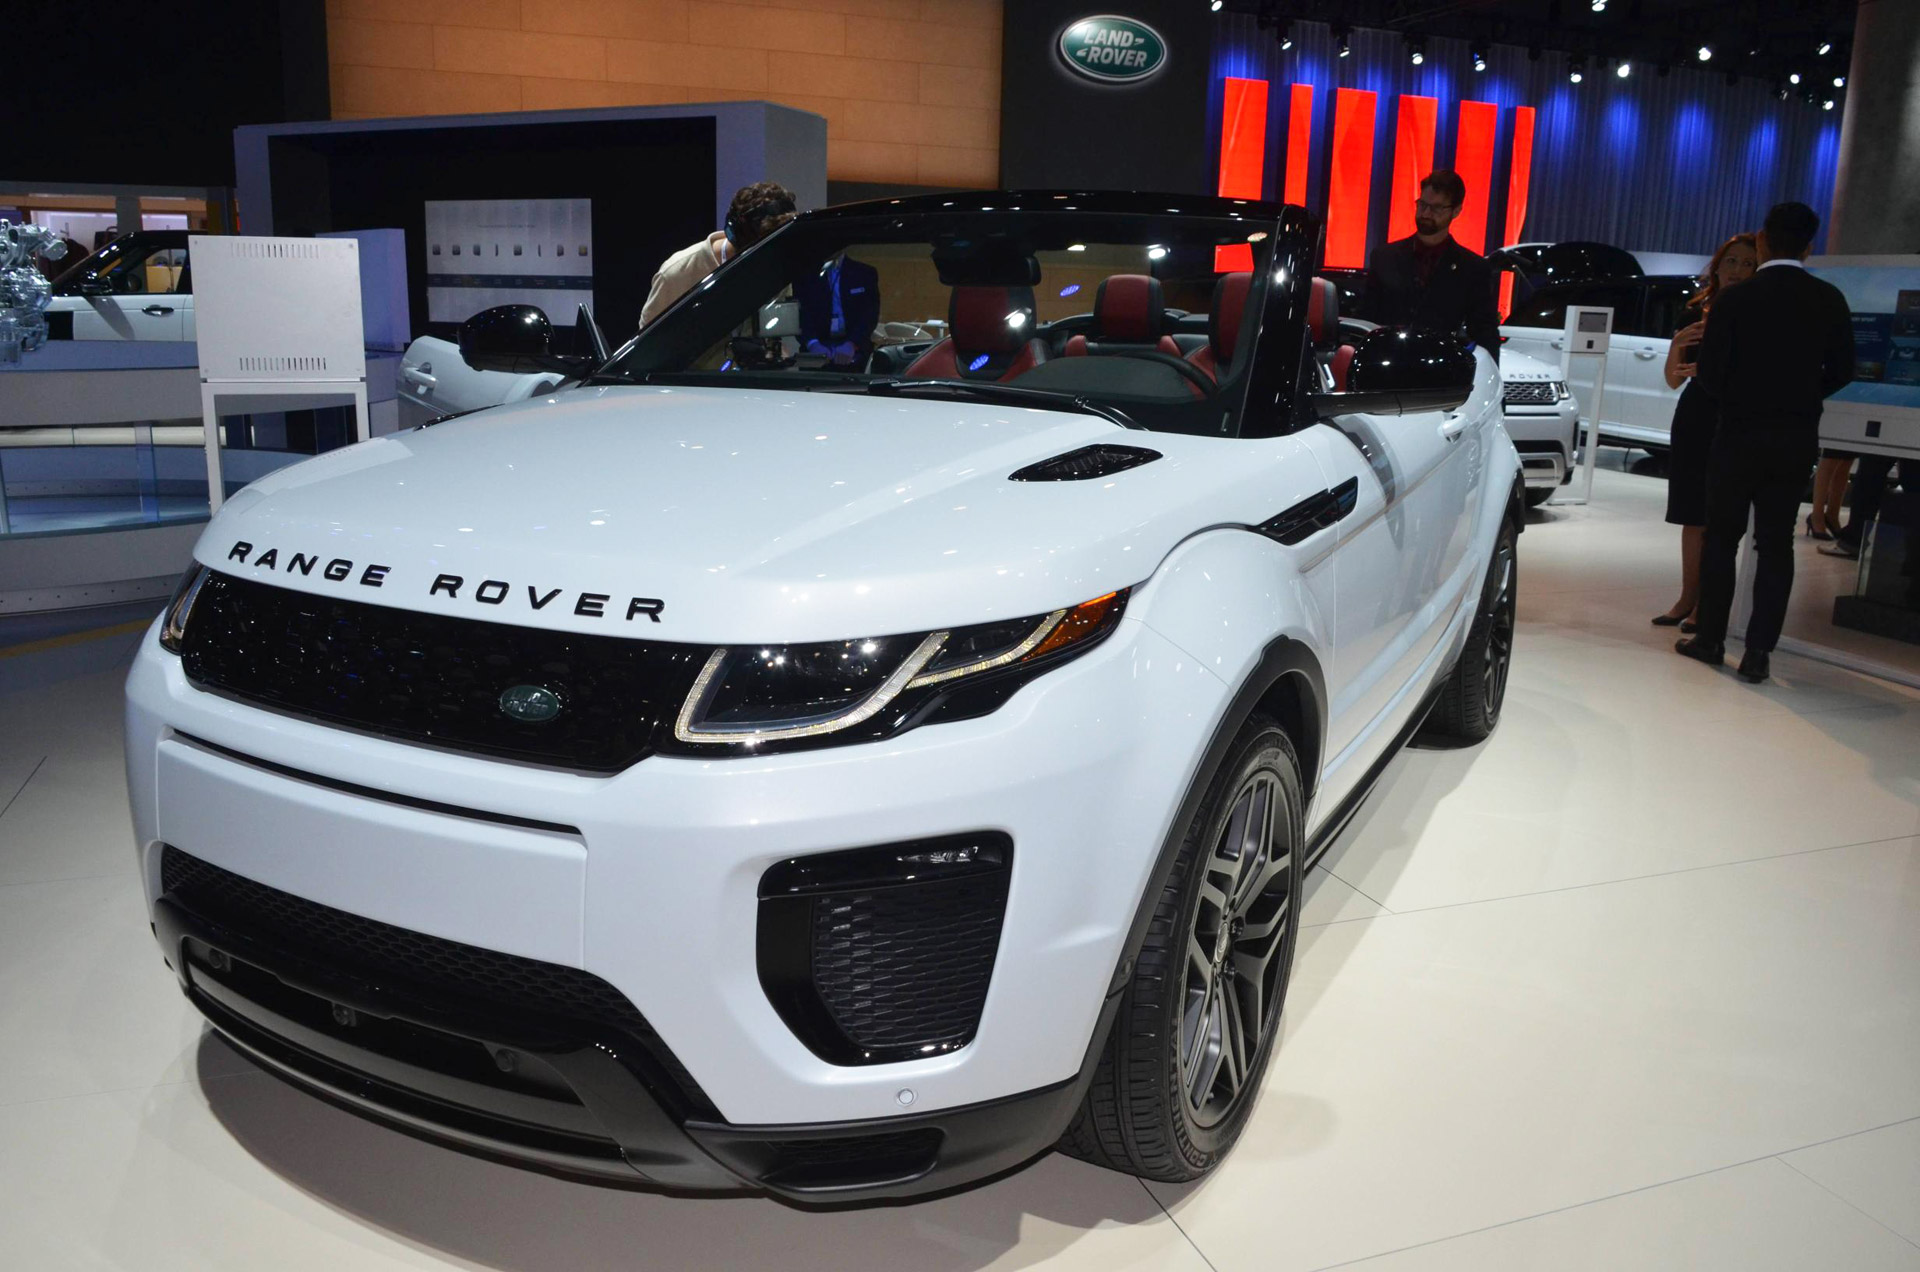 2017 Land Rover Range Rover Evoque Convertible Video Preview